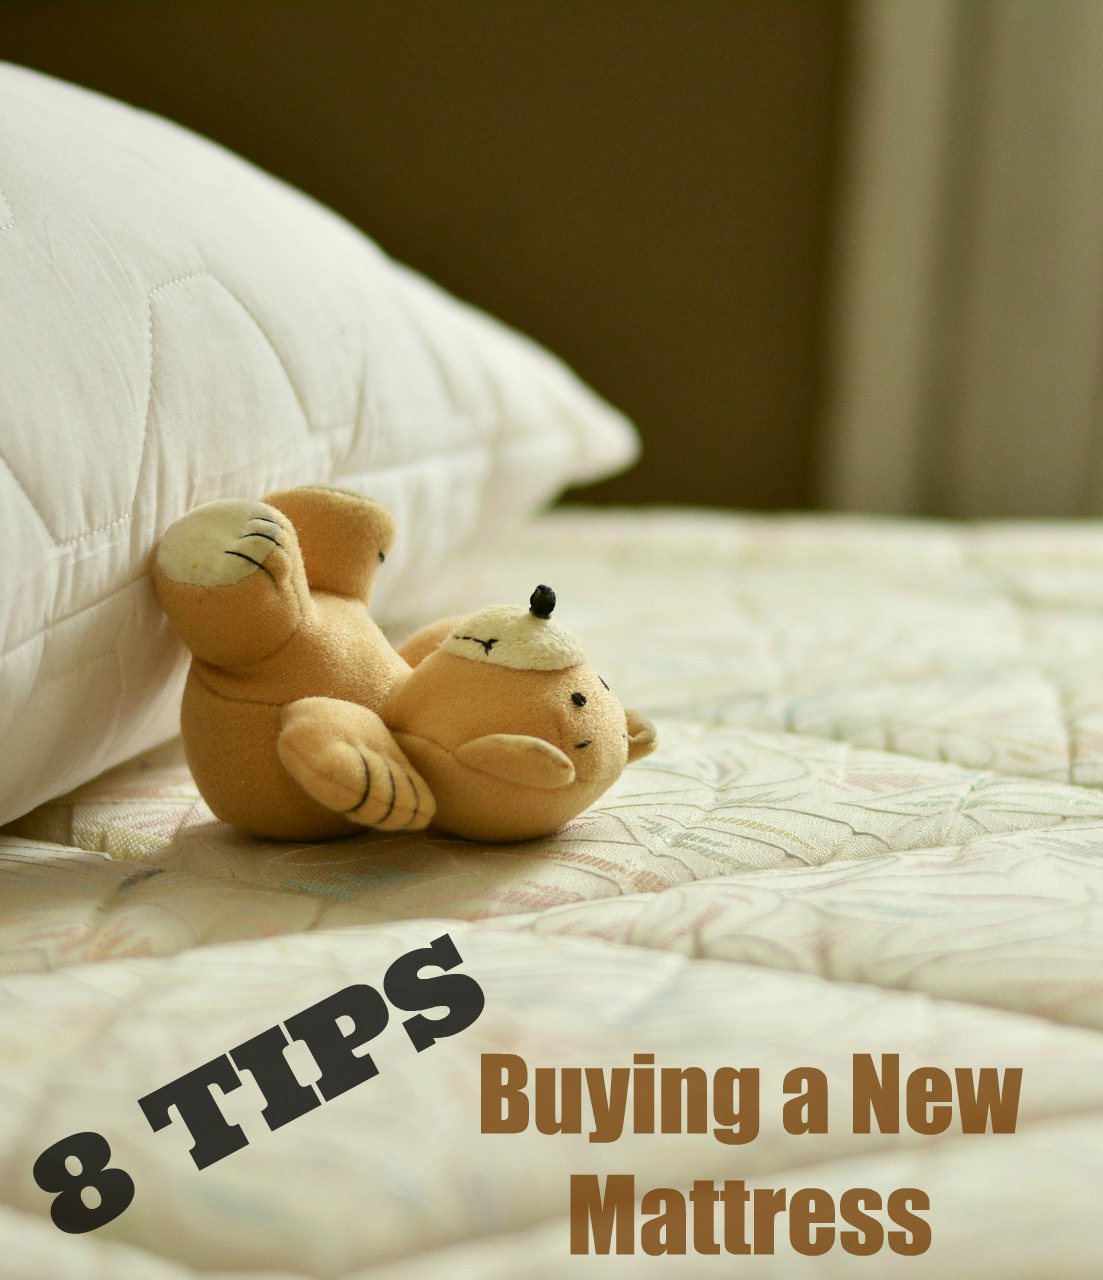 When To Buy A New Mattress 8 Tips For Buying A New Mattress The Stuff Of Success